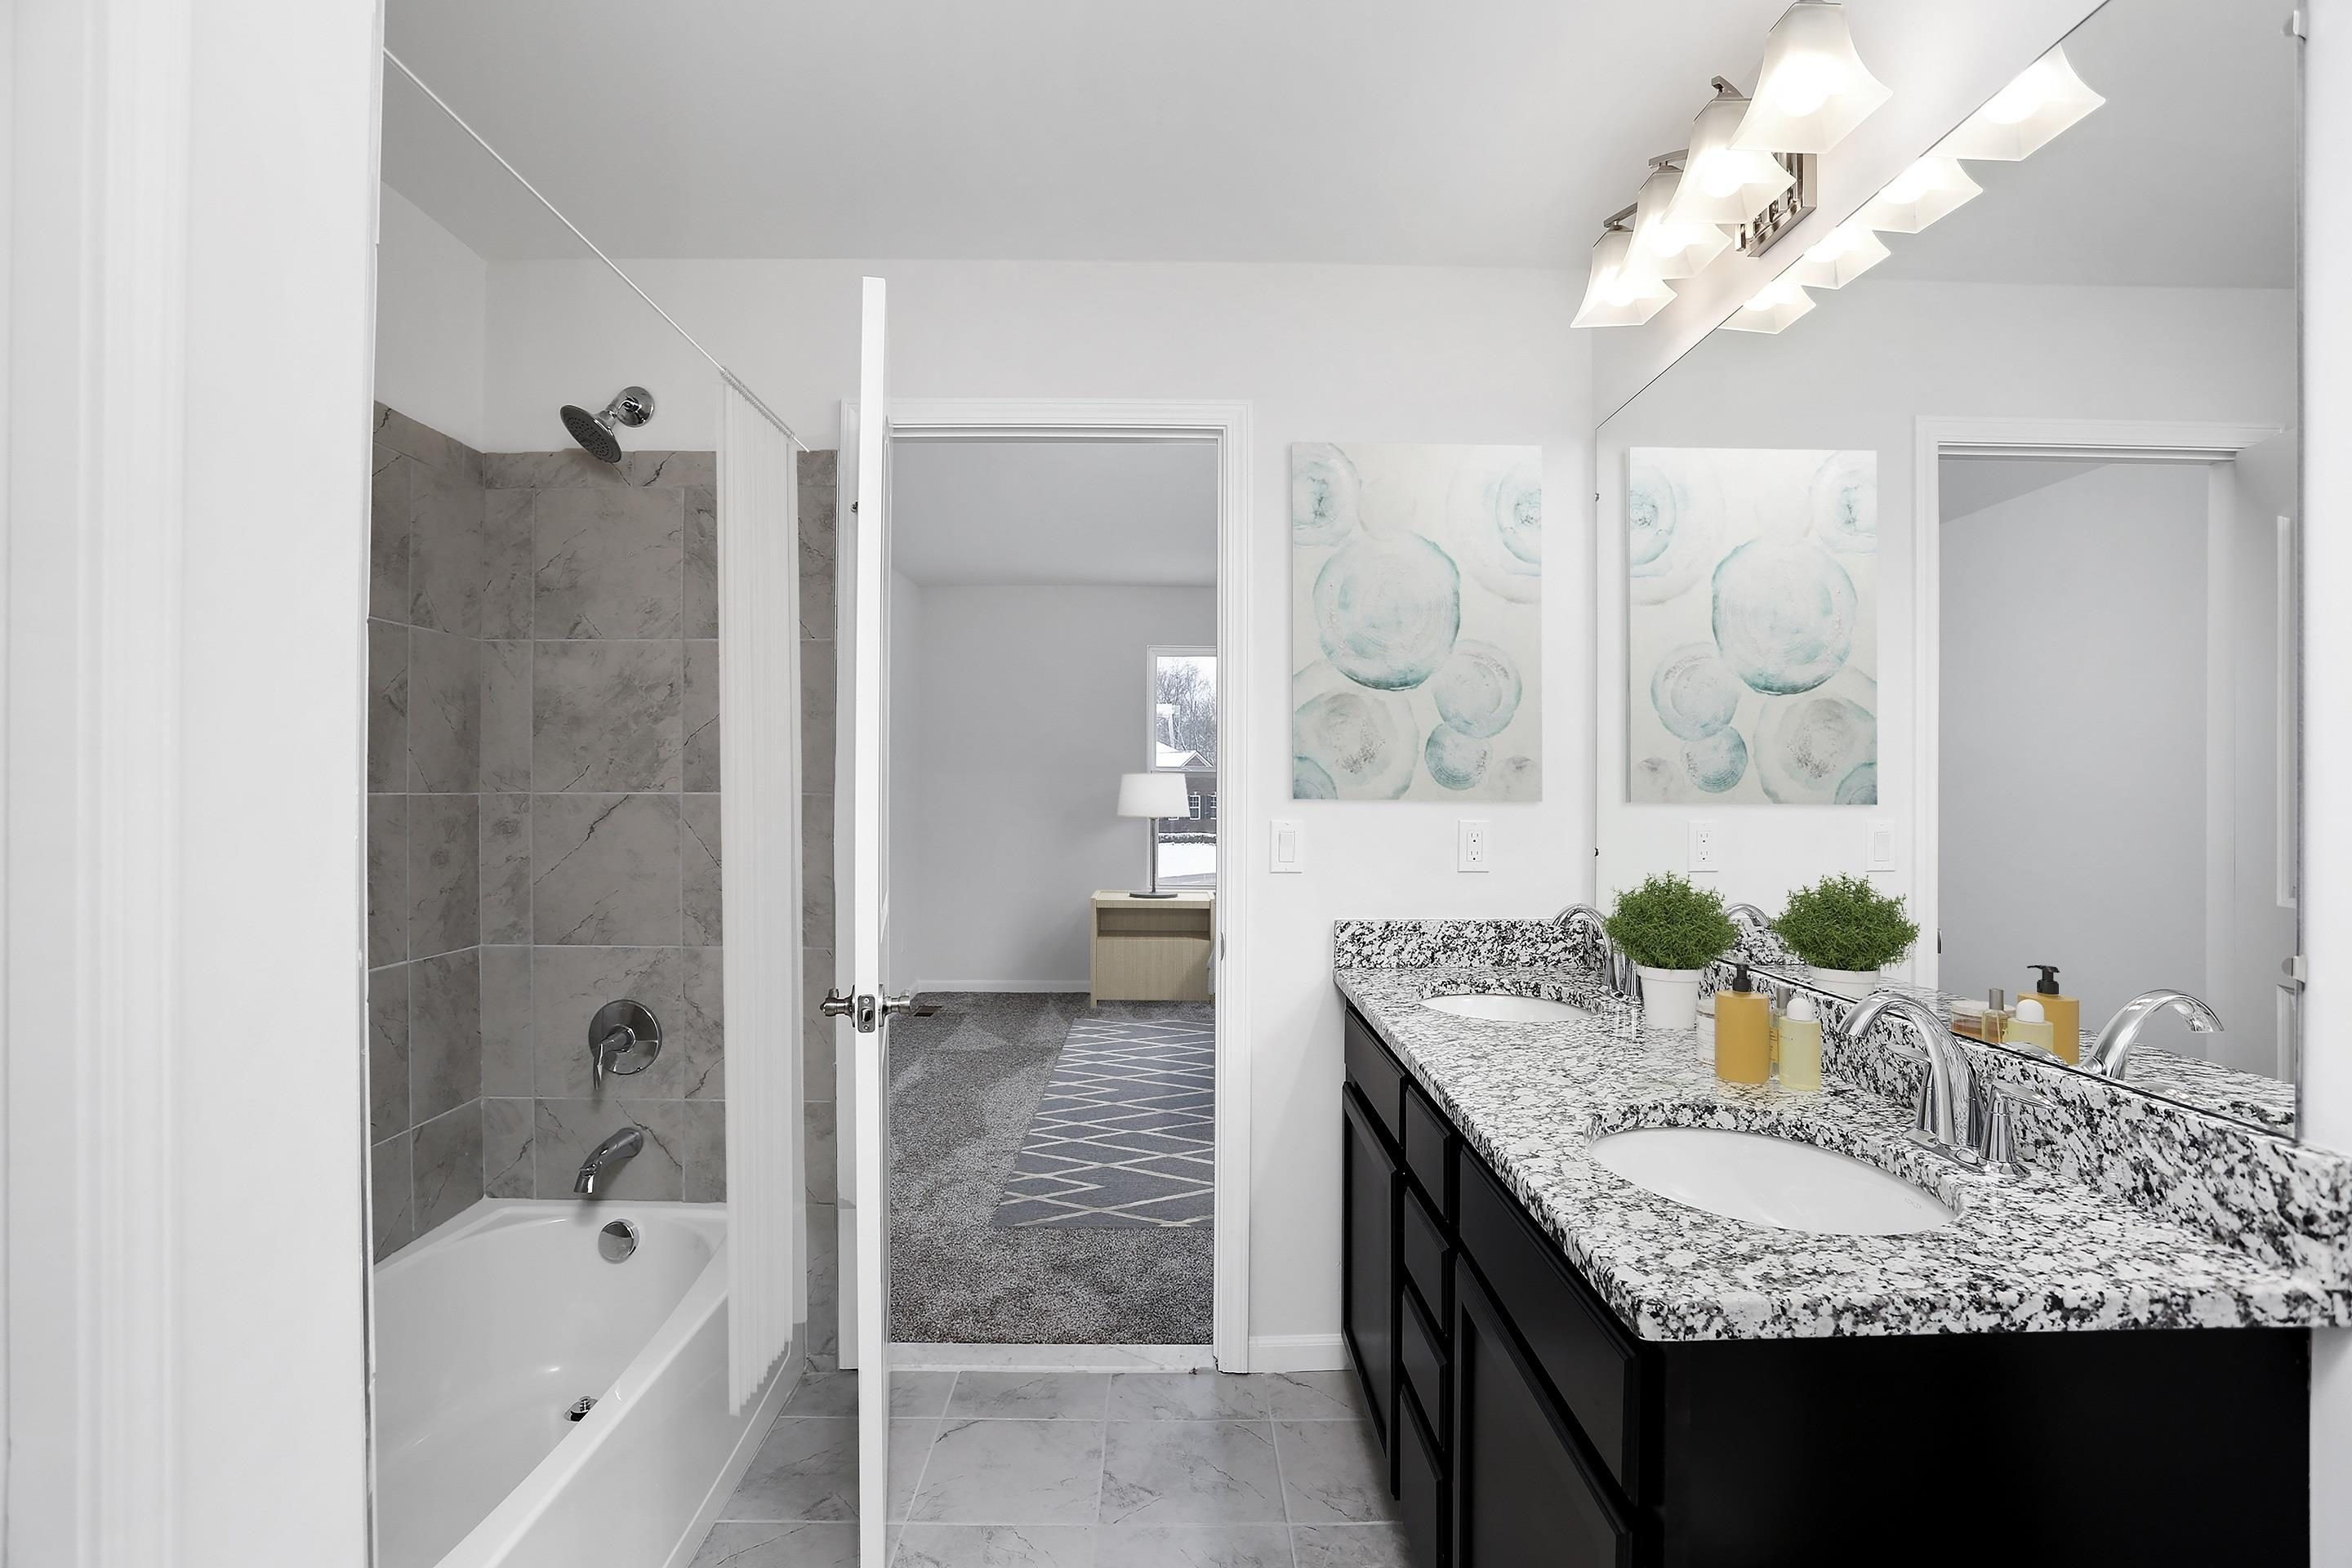 Bathroom featured in the Stirling By Singh Homes in Detroit, MI